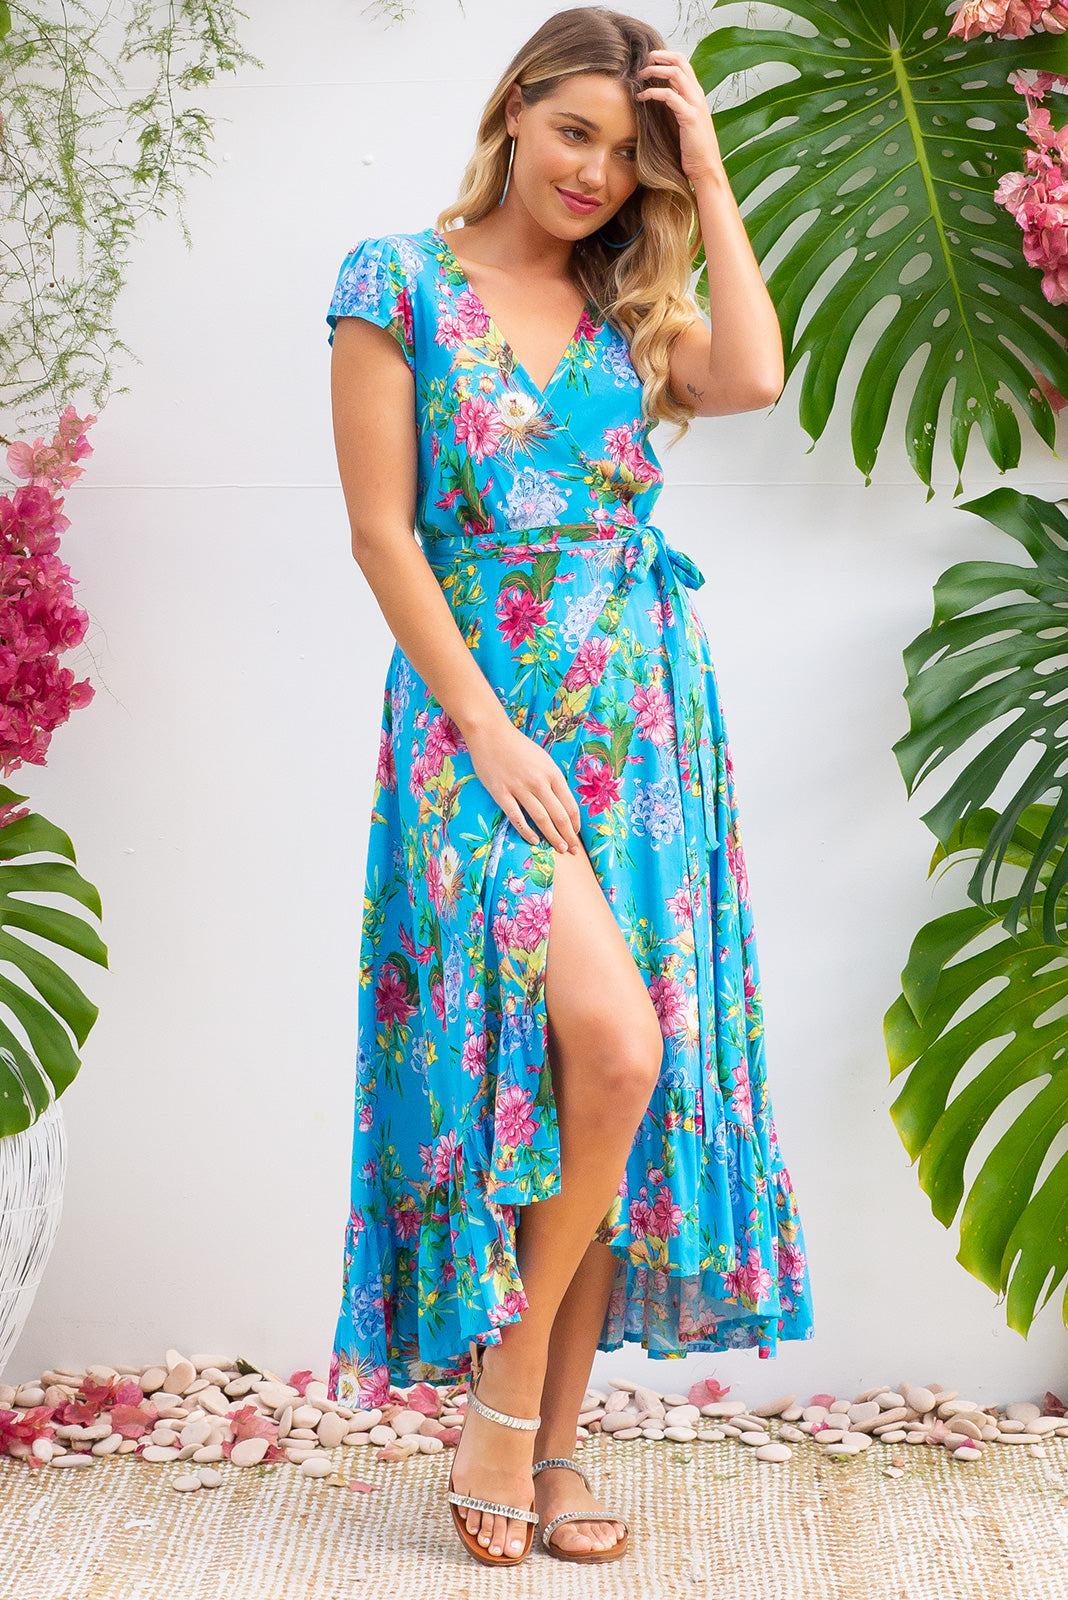 Symphony Verdi Sky Maxi Wrap Dress with a fitted bodice, cap sleeve and frill around the hem in a bright sky blue floral print on rayon